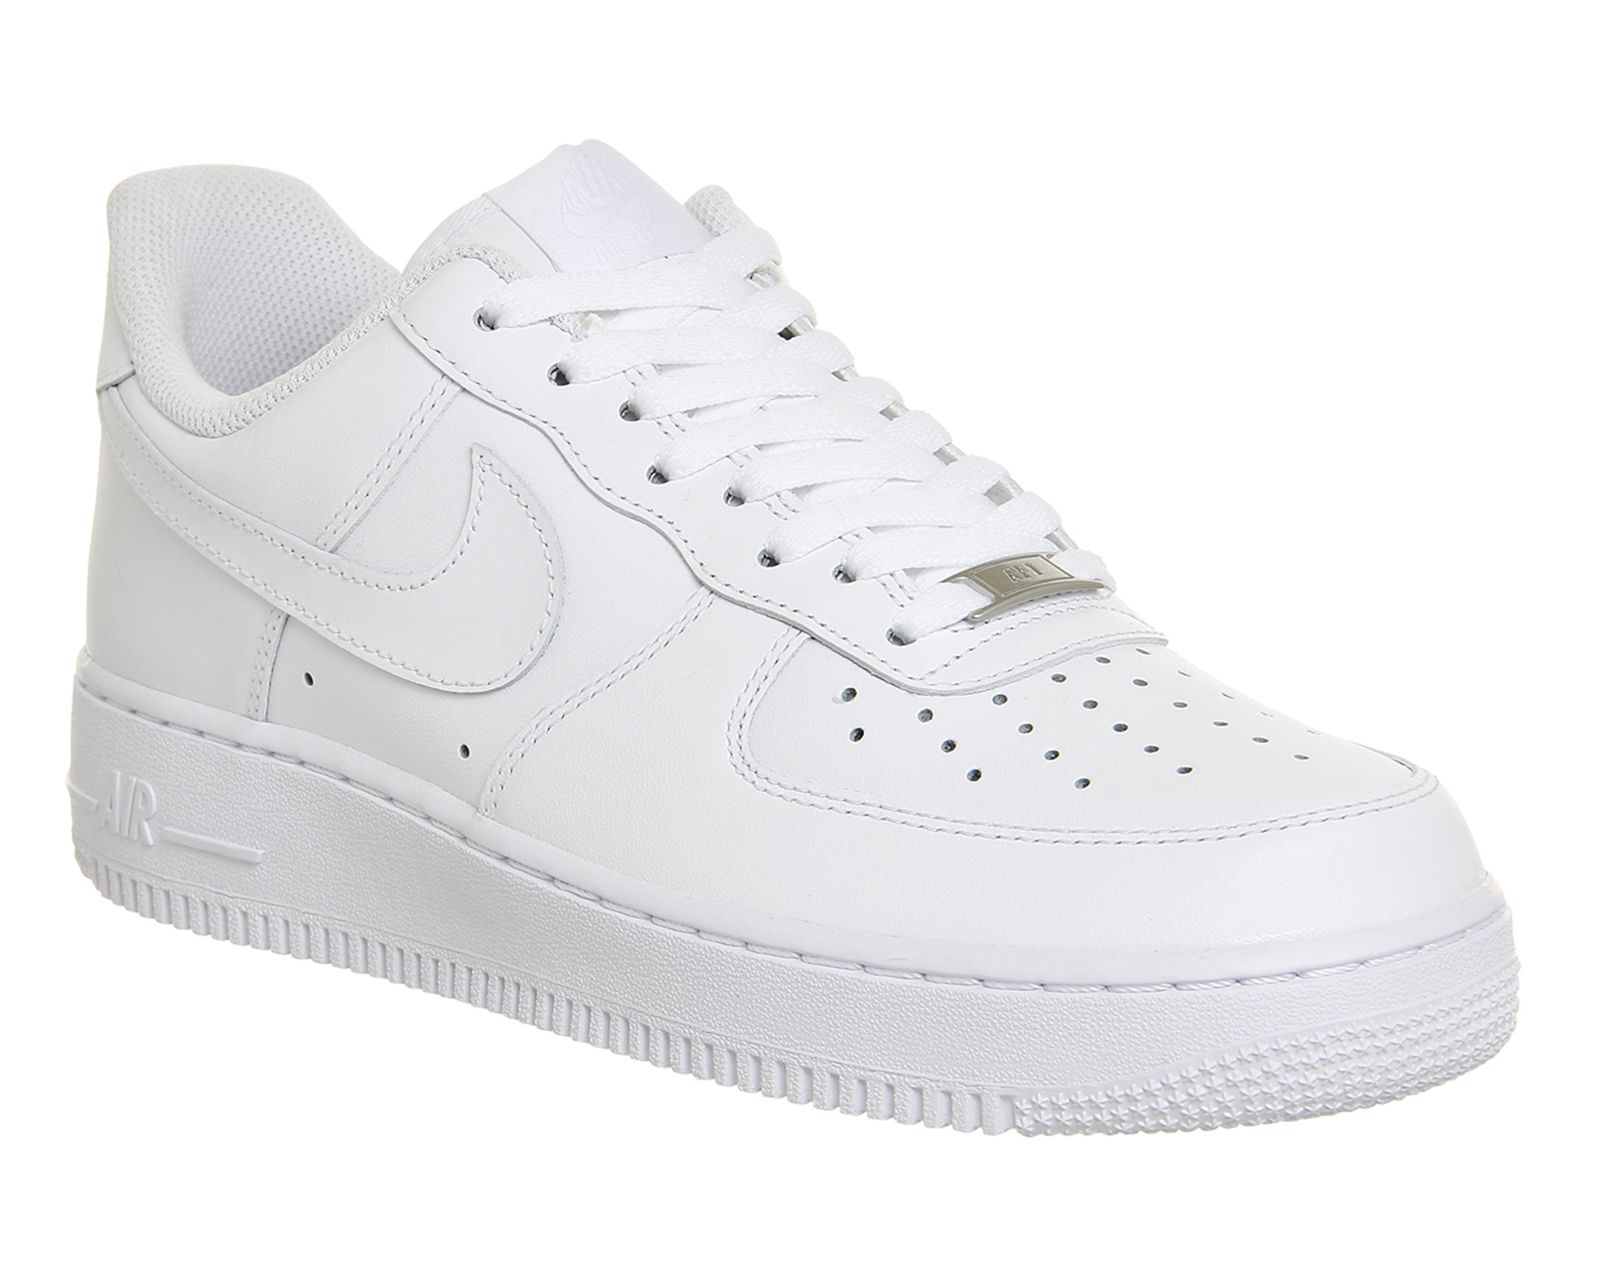 nike air force 1 office. buy white nike air force 1 m from officecouk office